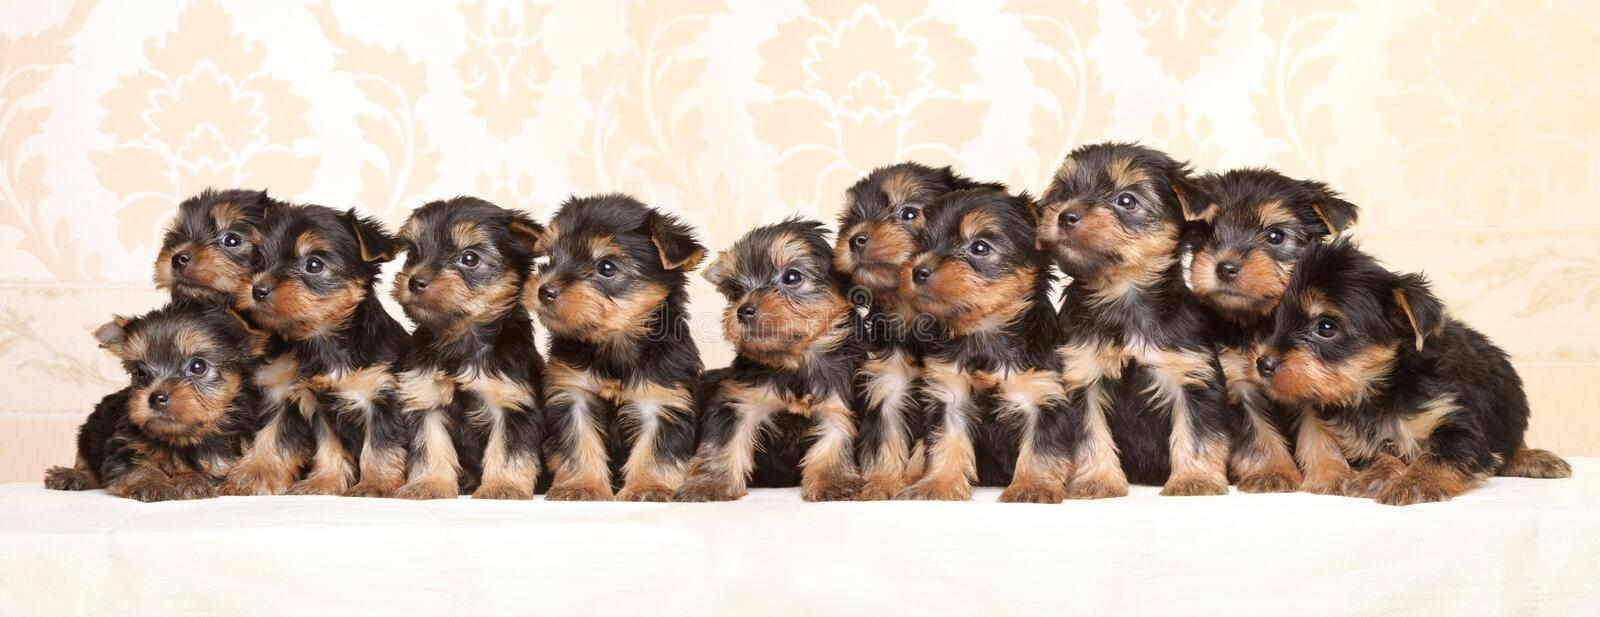 Large group of Yorkshire Terrier puppies royalty free stock image